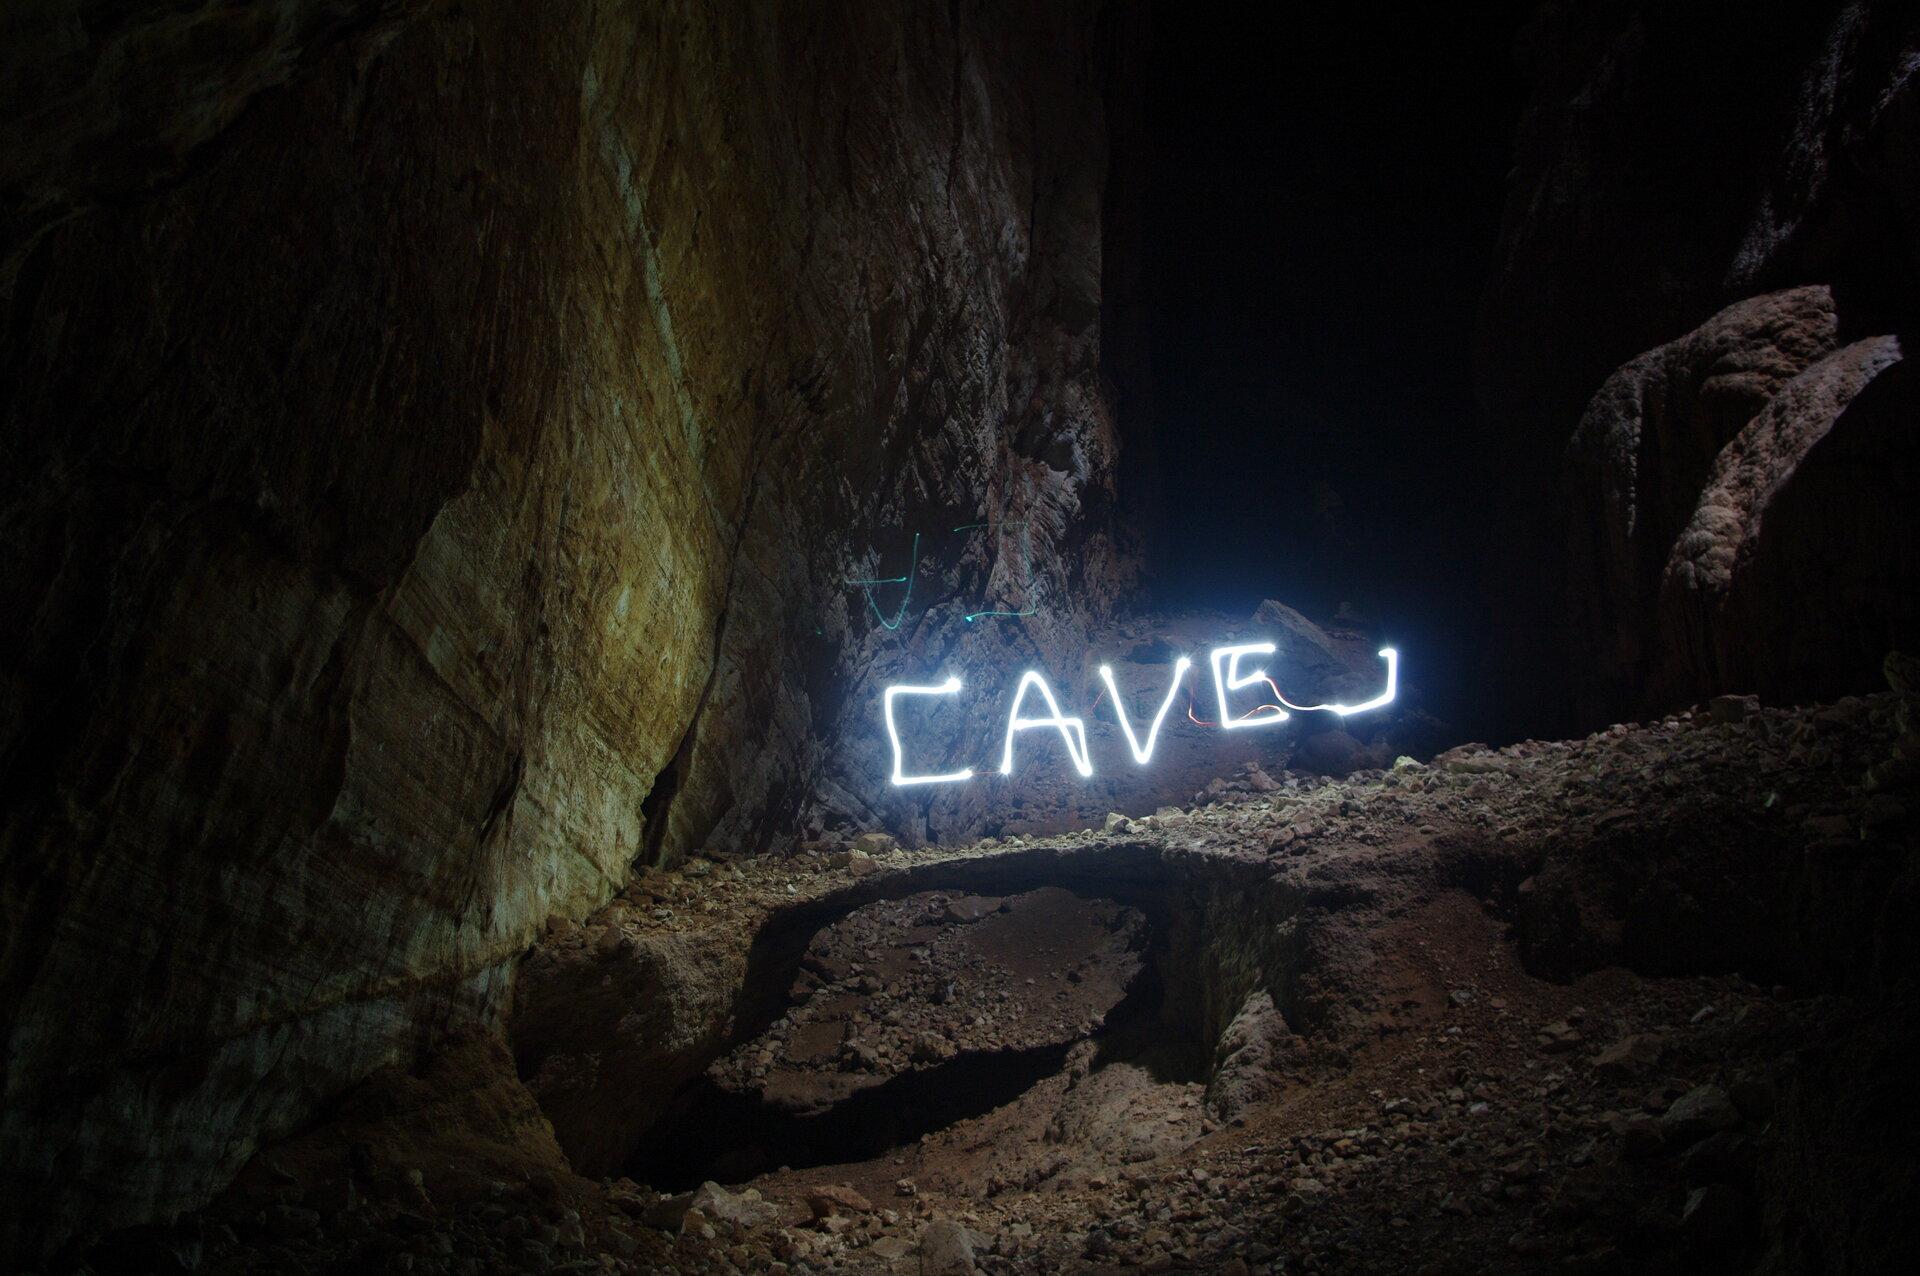 Thomas Pesquet's cave art